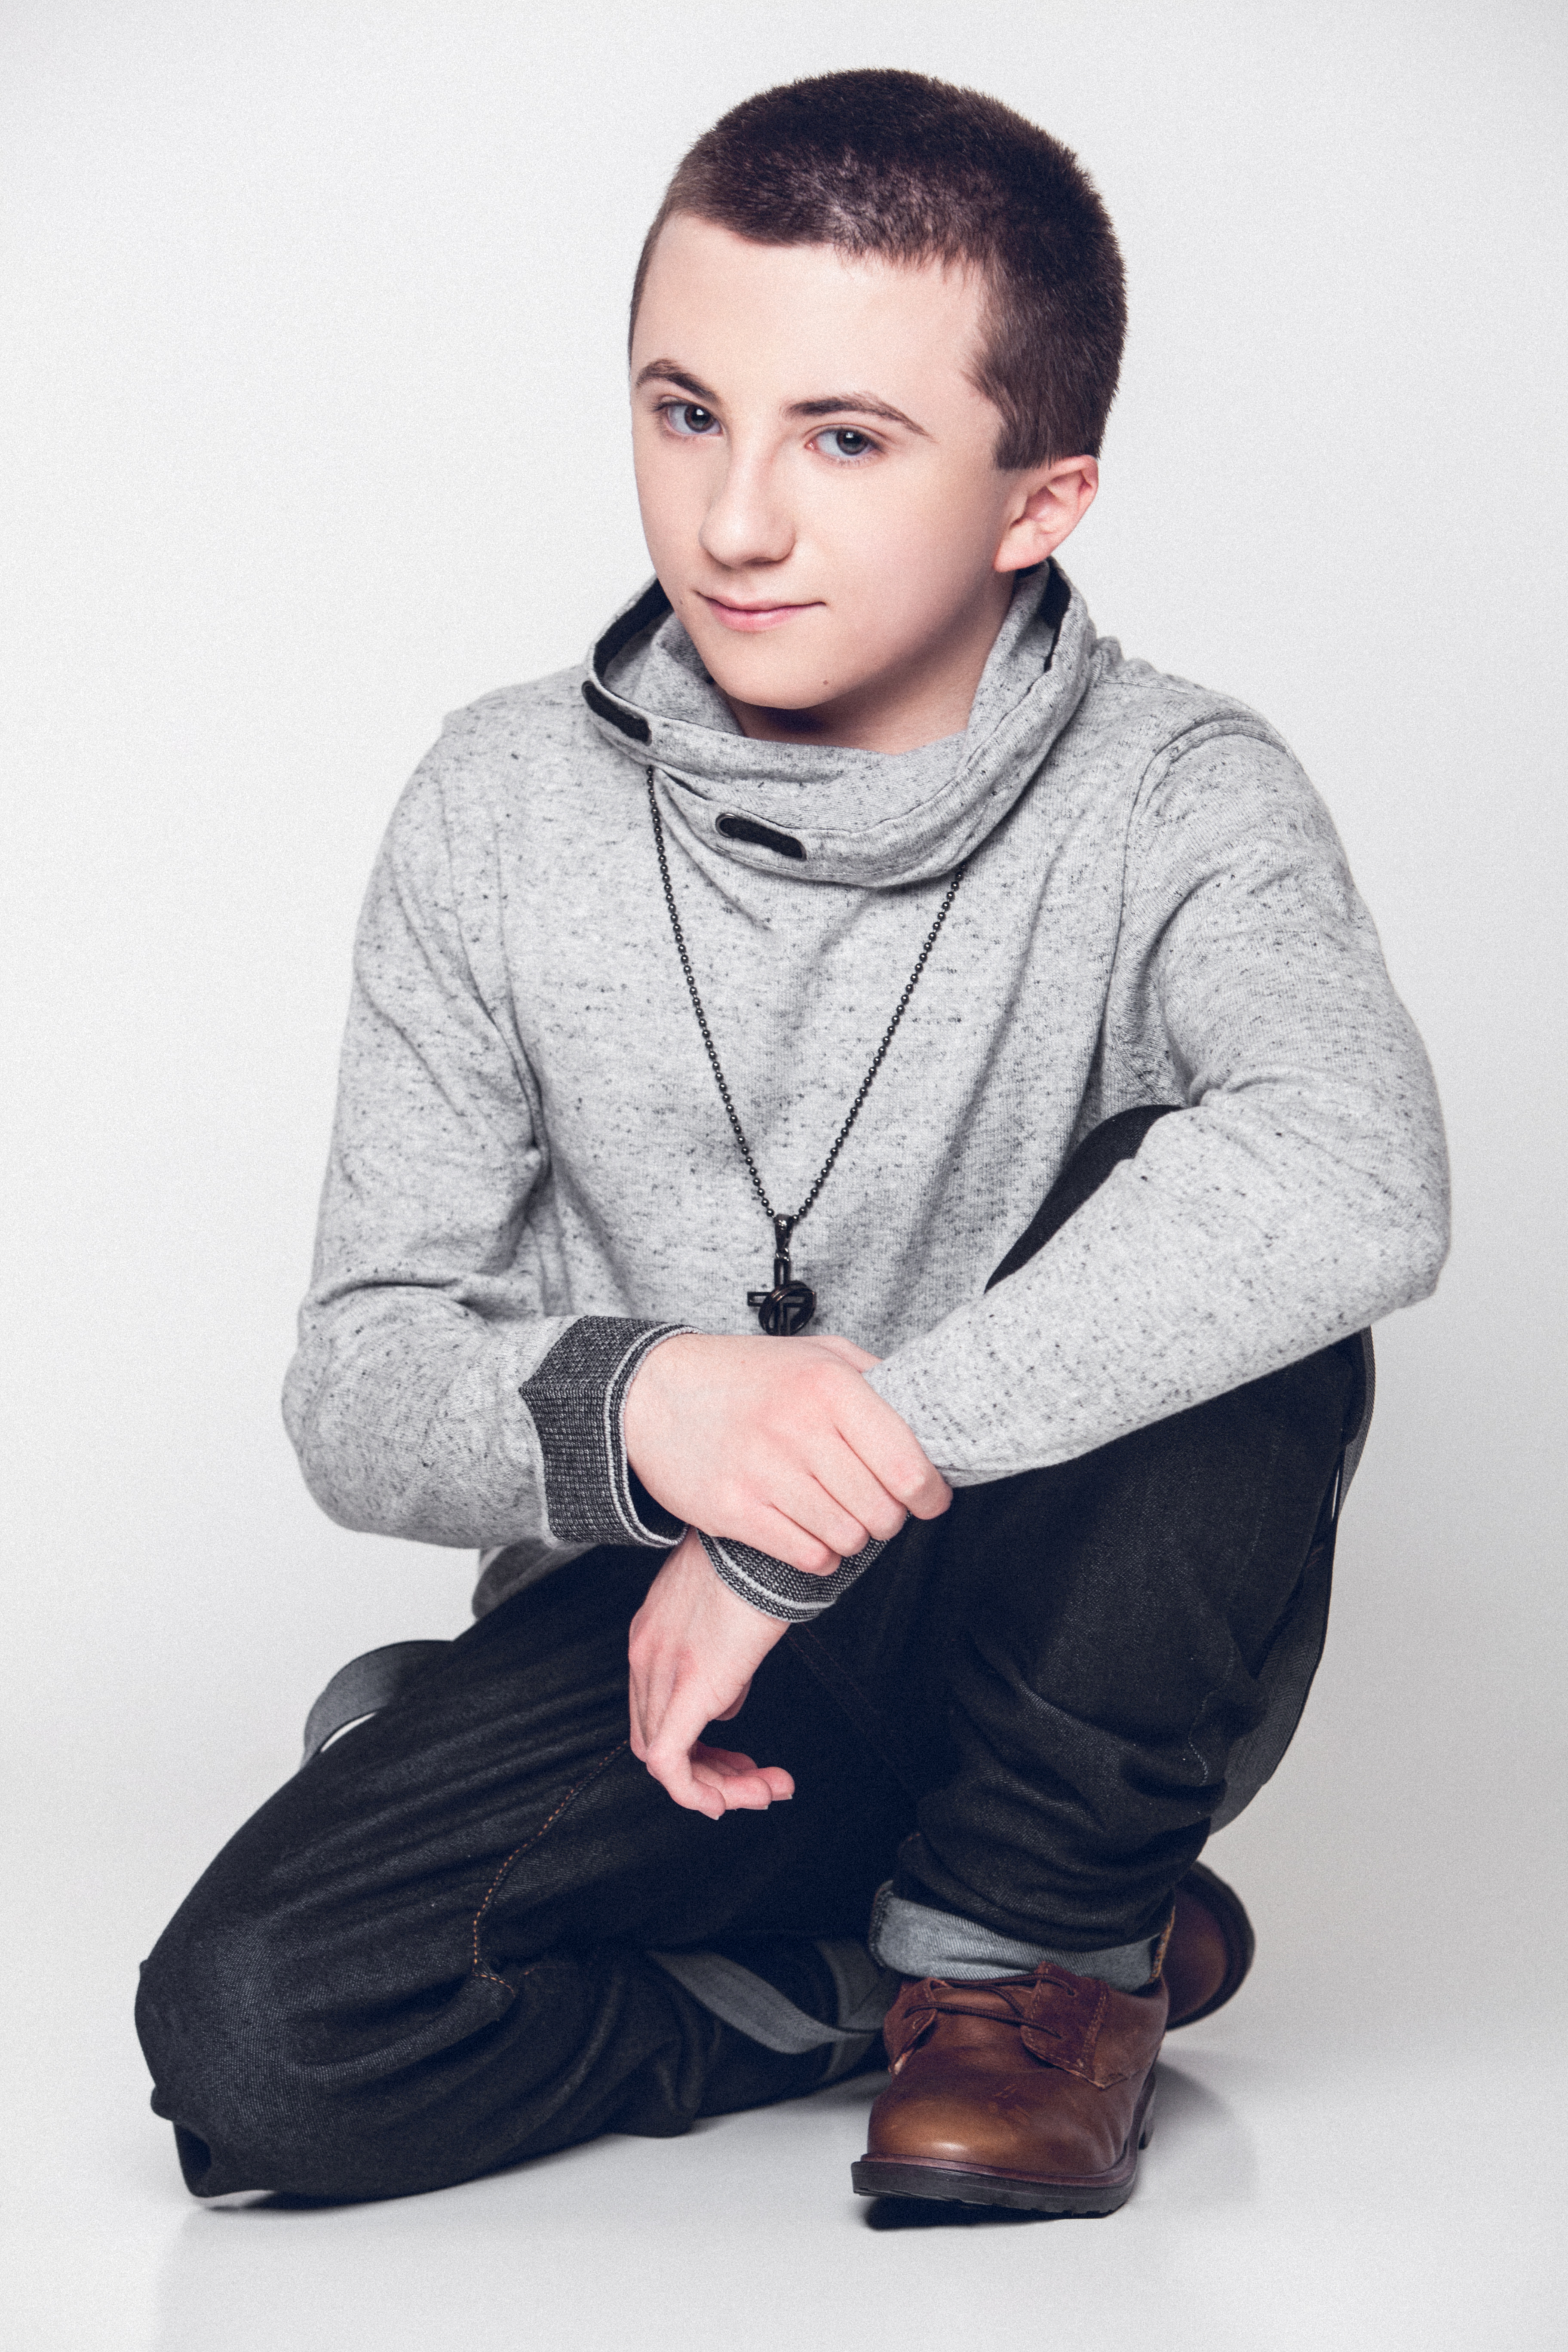 Atticus Shaffer Talks About Season 6 Of The Middle